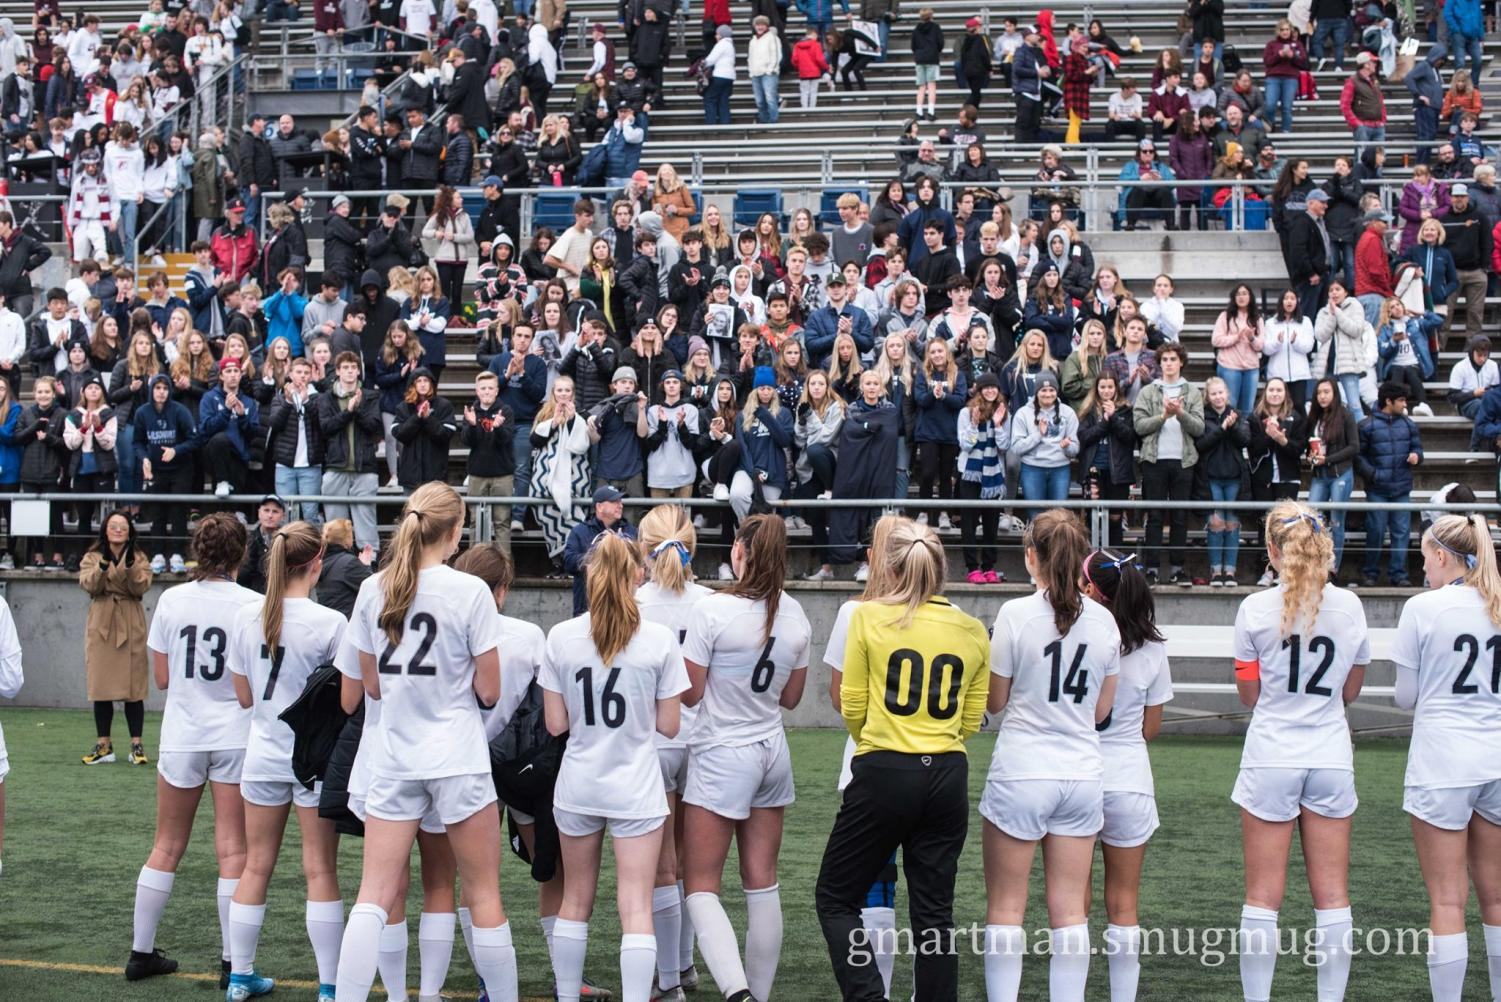 The Wildcats, a team with ten seniors, thanked their fans for the support during their best season to date.